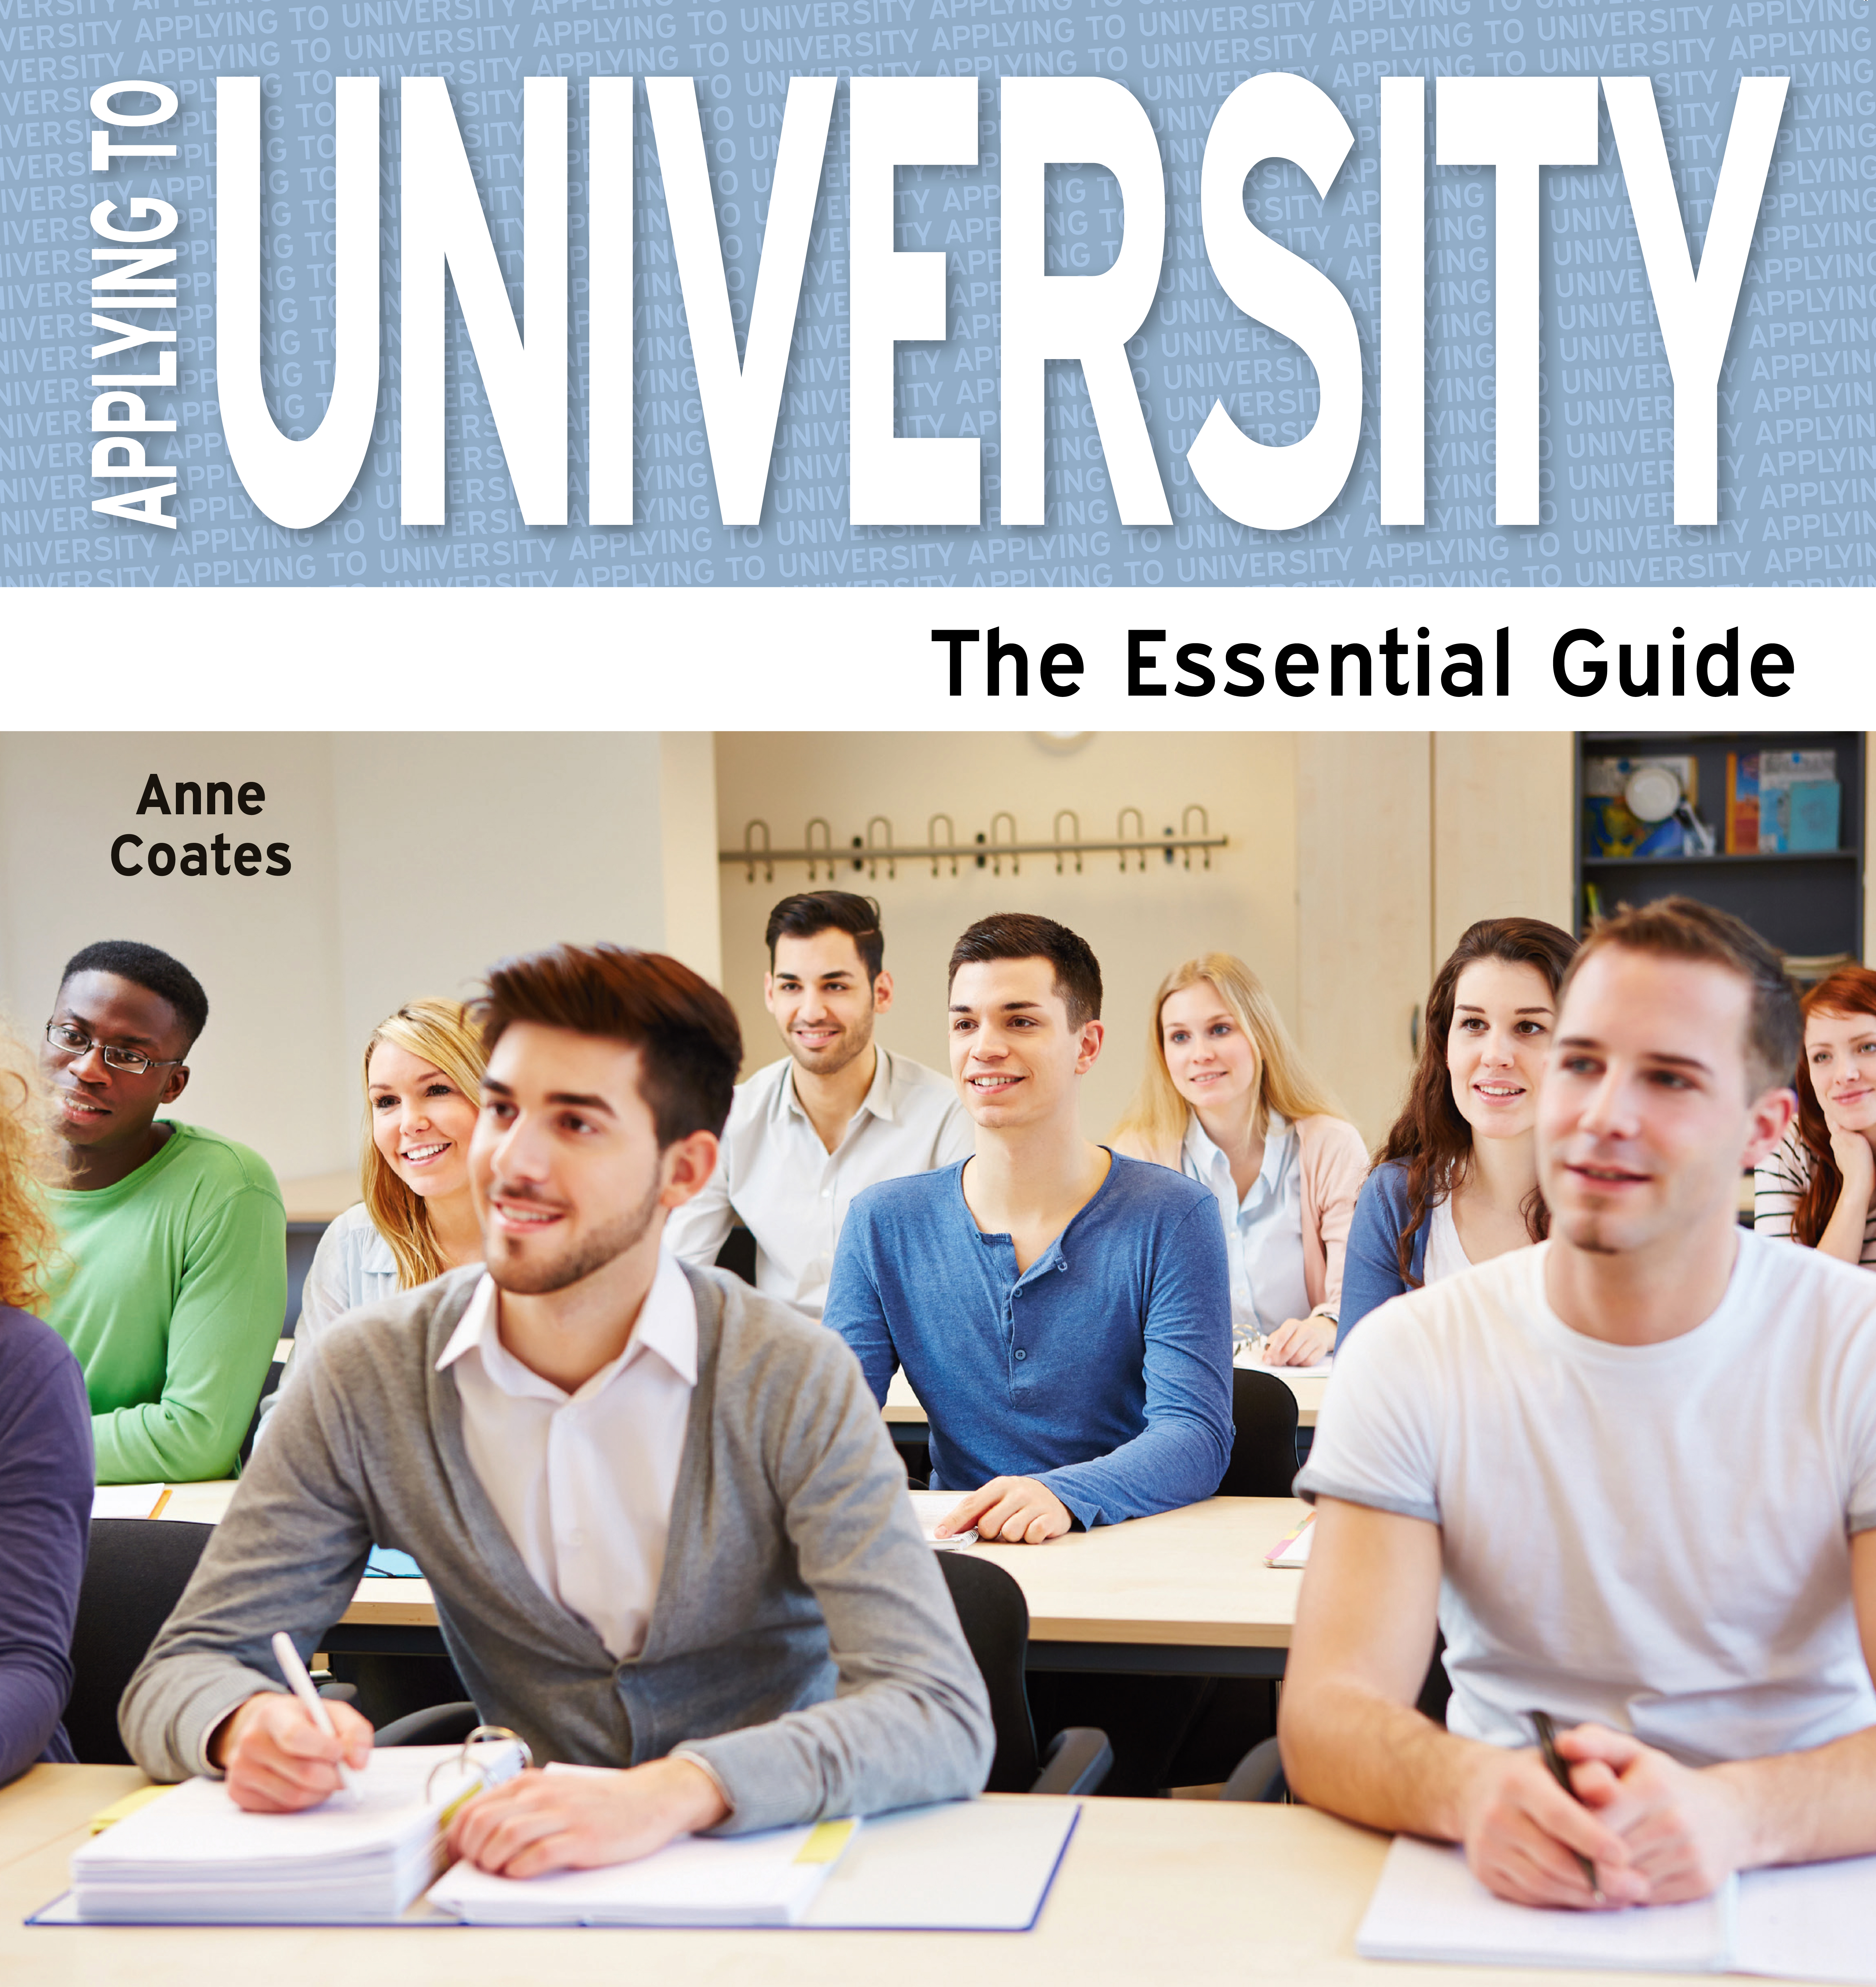 Applying to University The Essential Guide